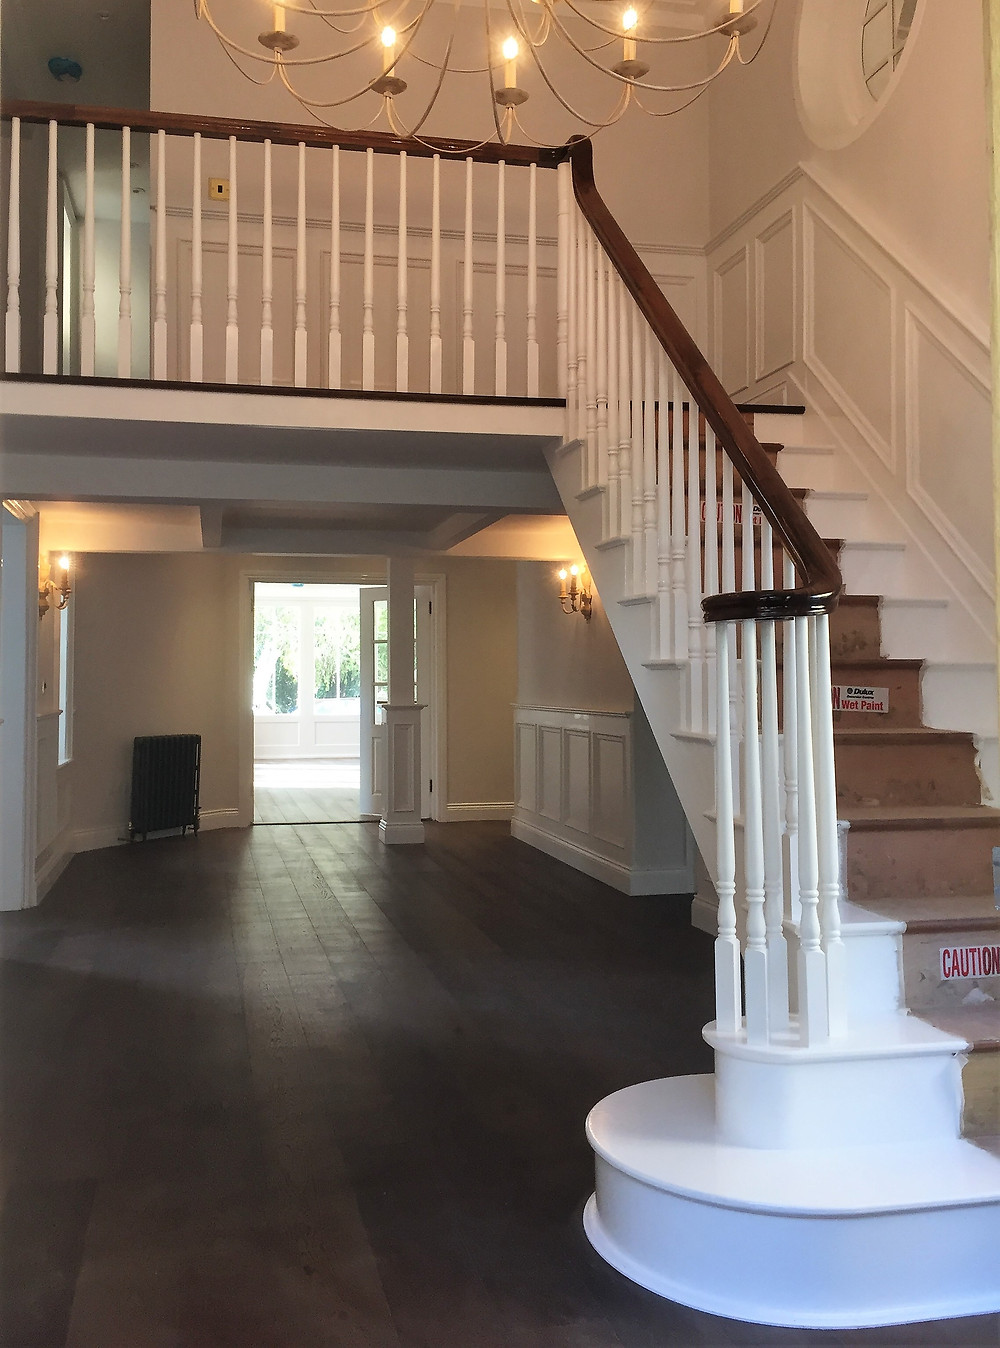 Townhouse: New Period Staircase and Gallery